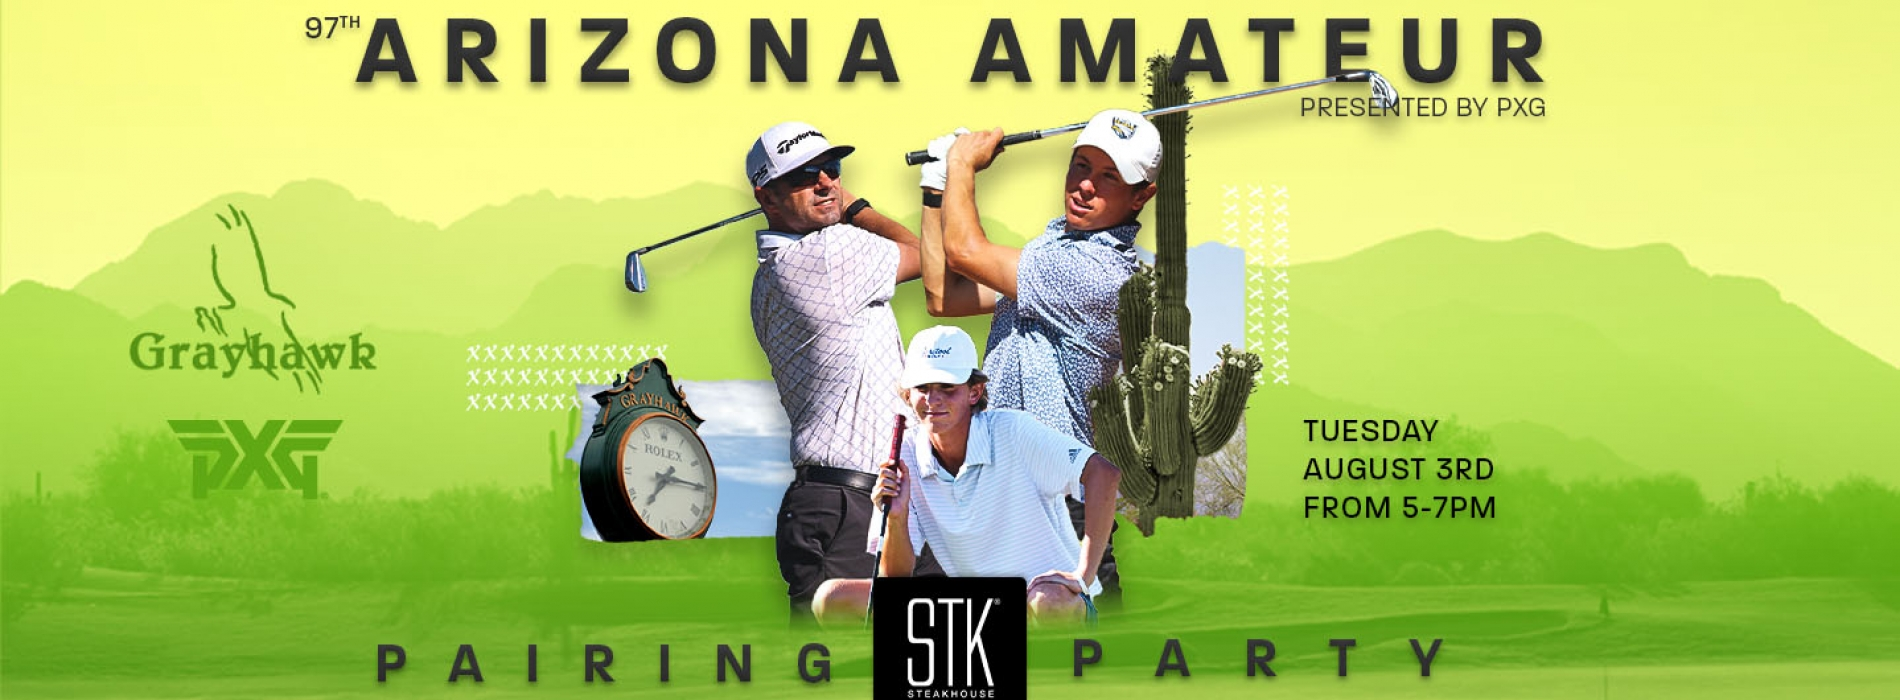 Join the AGA on August #rd from 5-7pm for the AZ Amateur Pairing Party